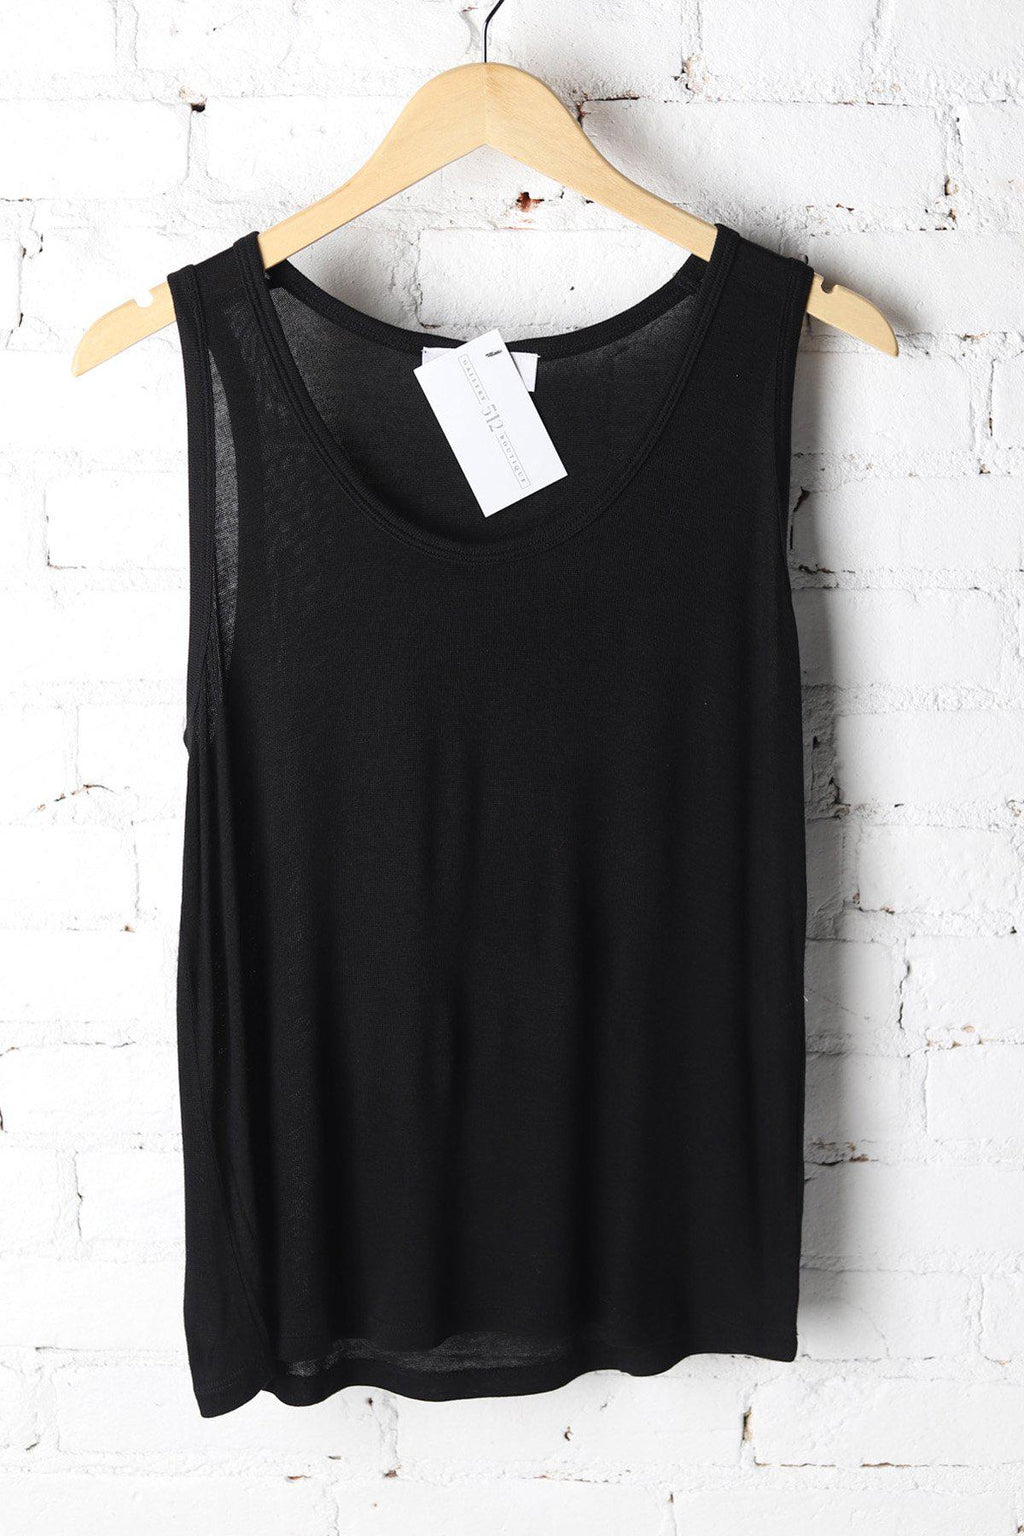 Holland Black Scoop Neck Tank - Gallery 512 Boutique